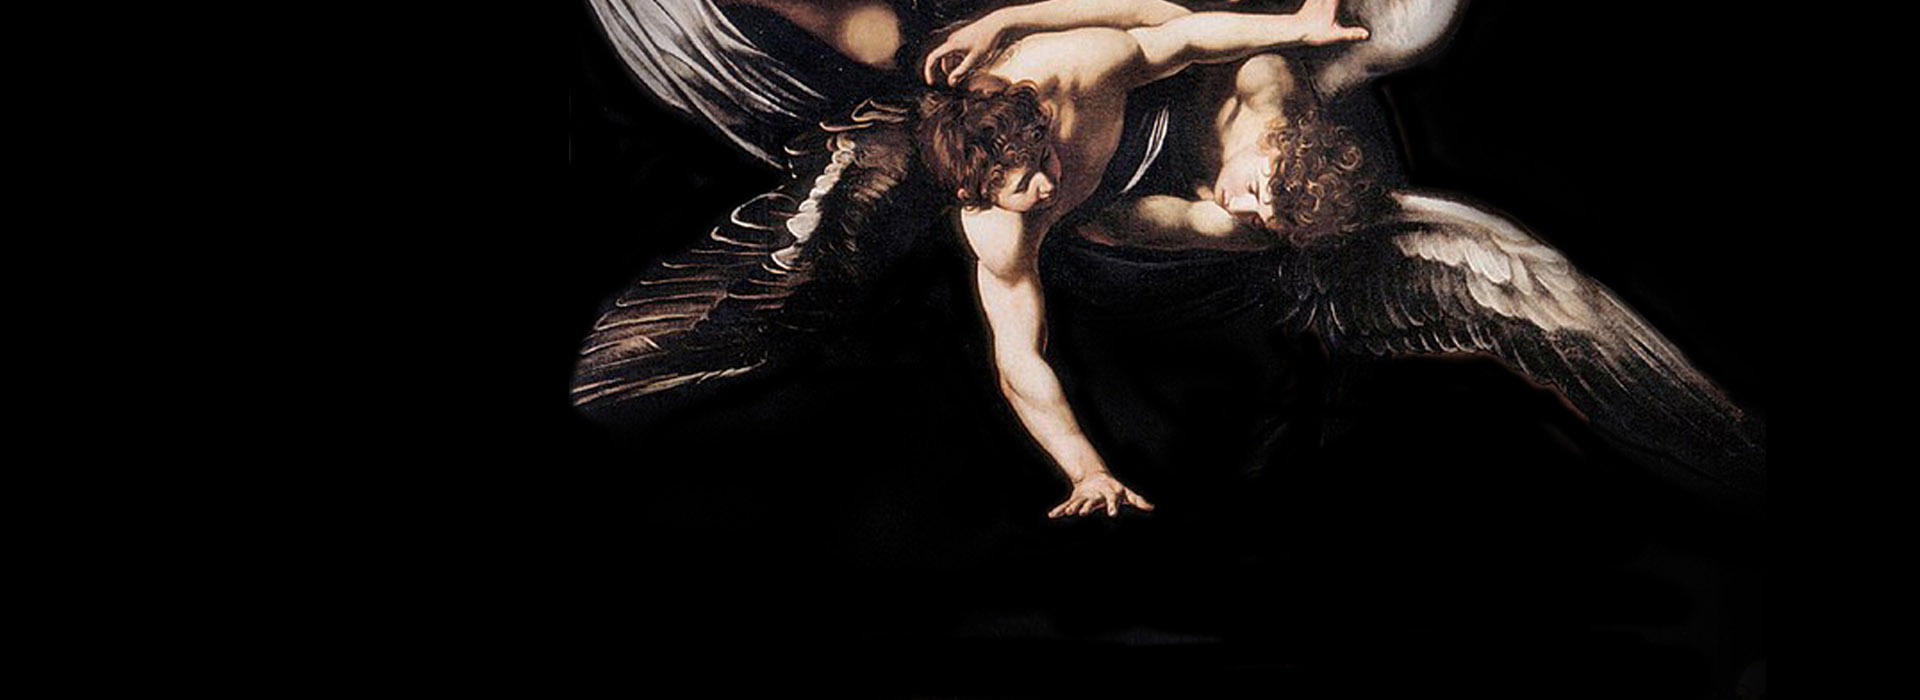 CARAVAGGIO. BEYOND THE CANVAS